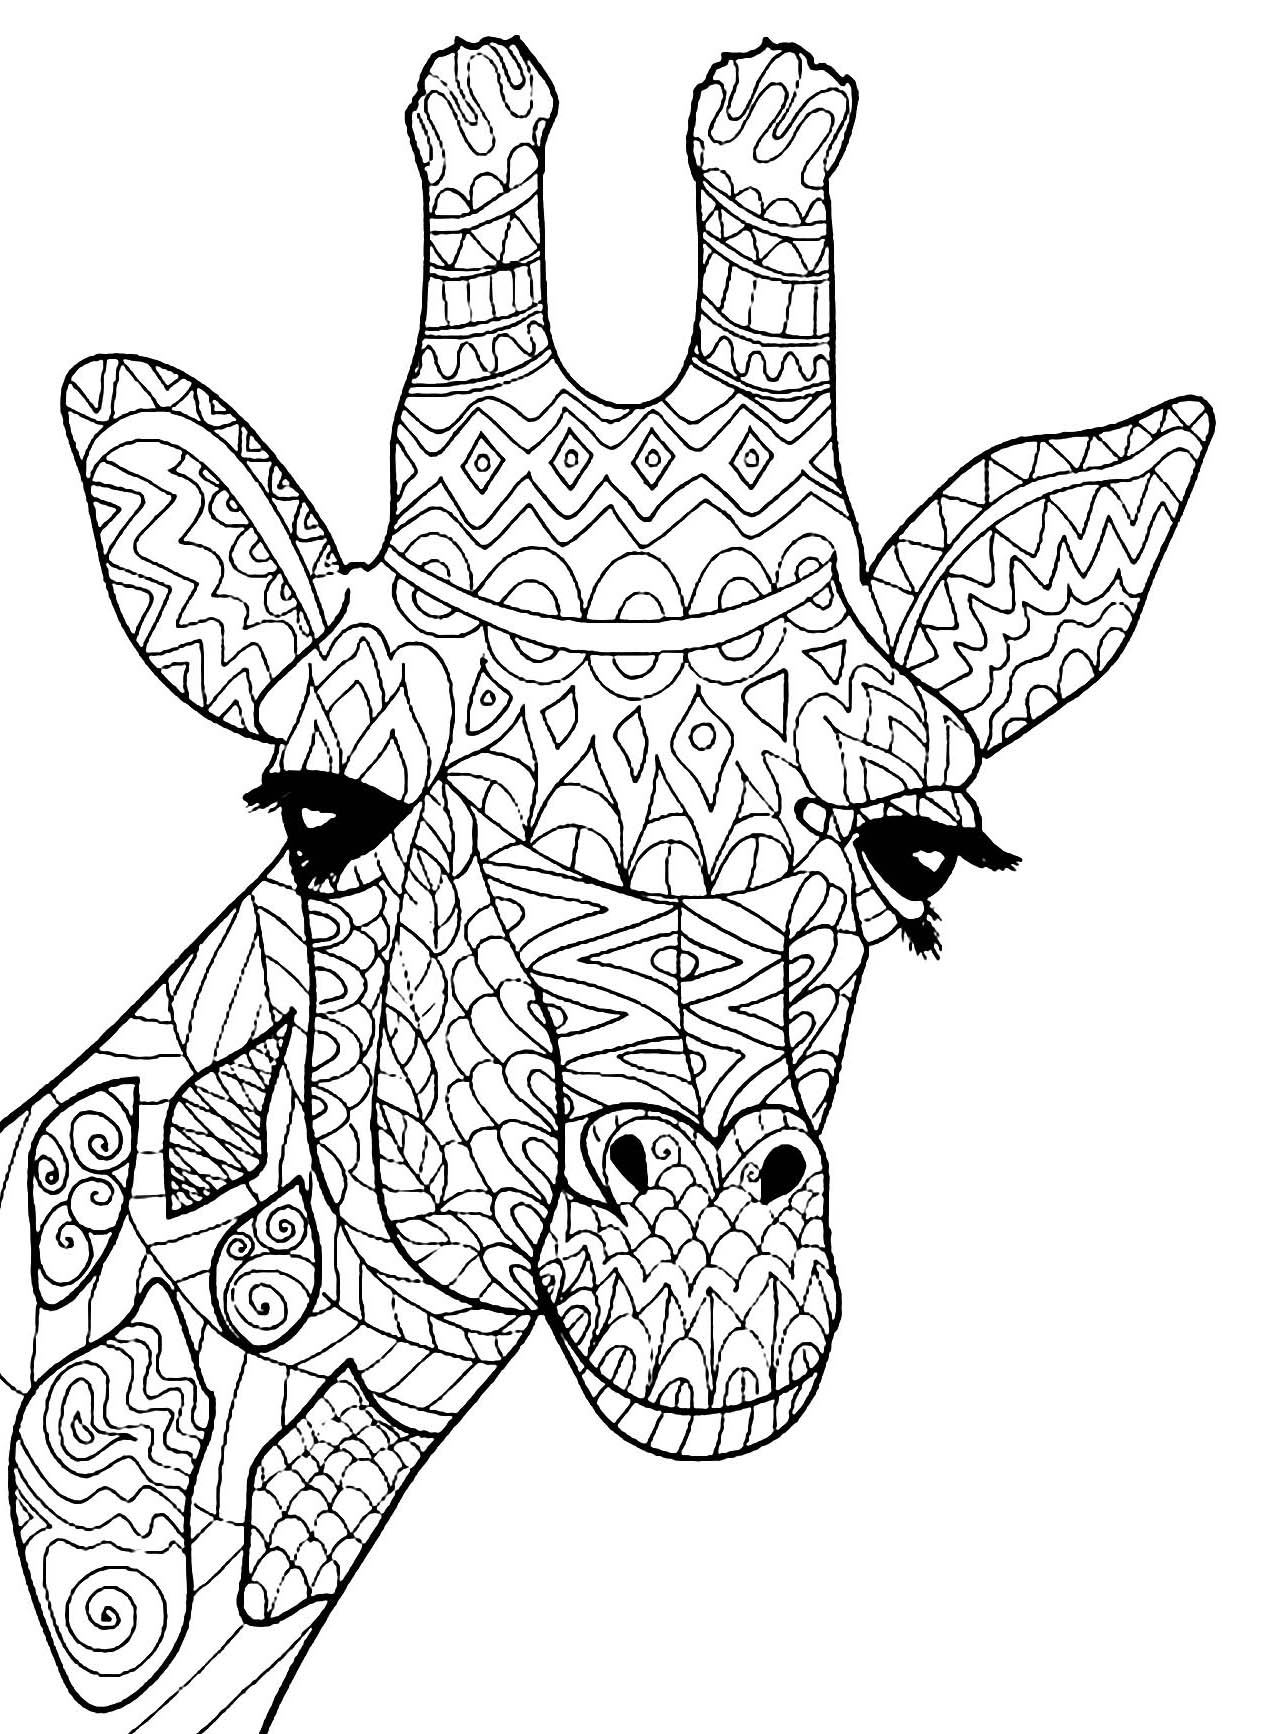 Giraffes For Kids Giraffes Kids Coloring Pages